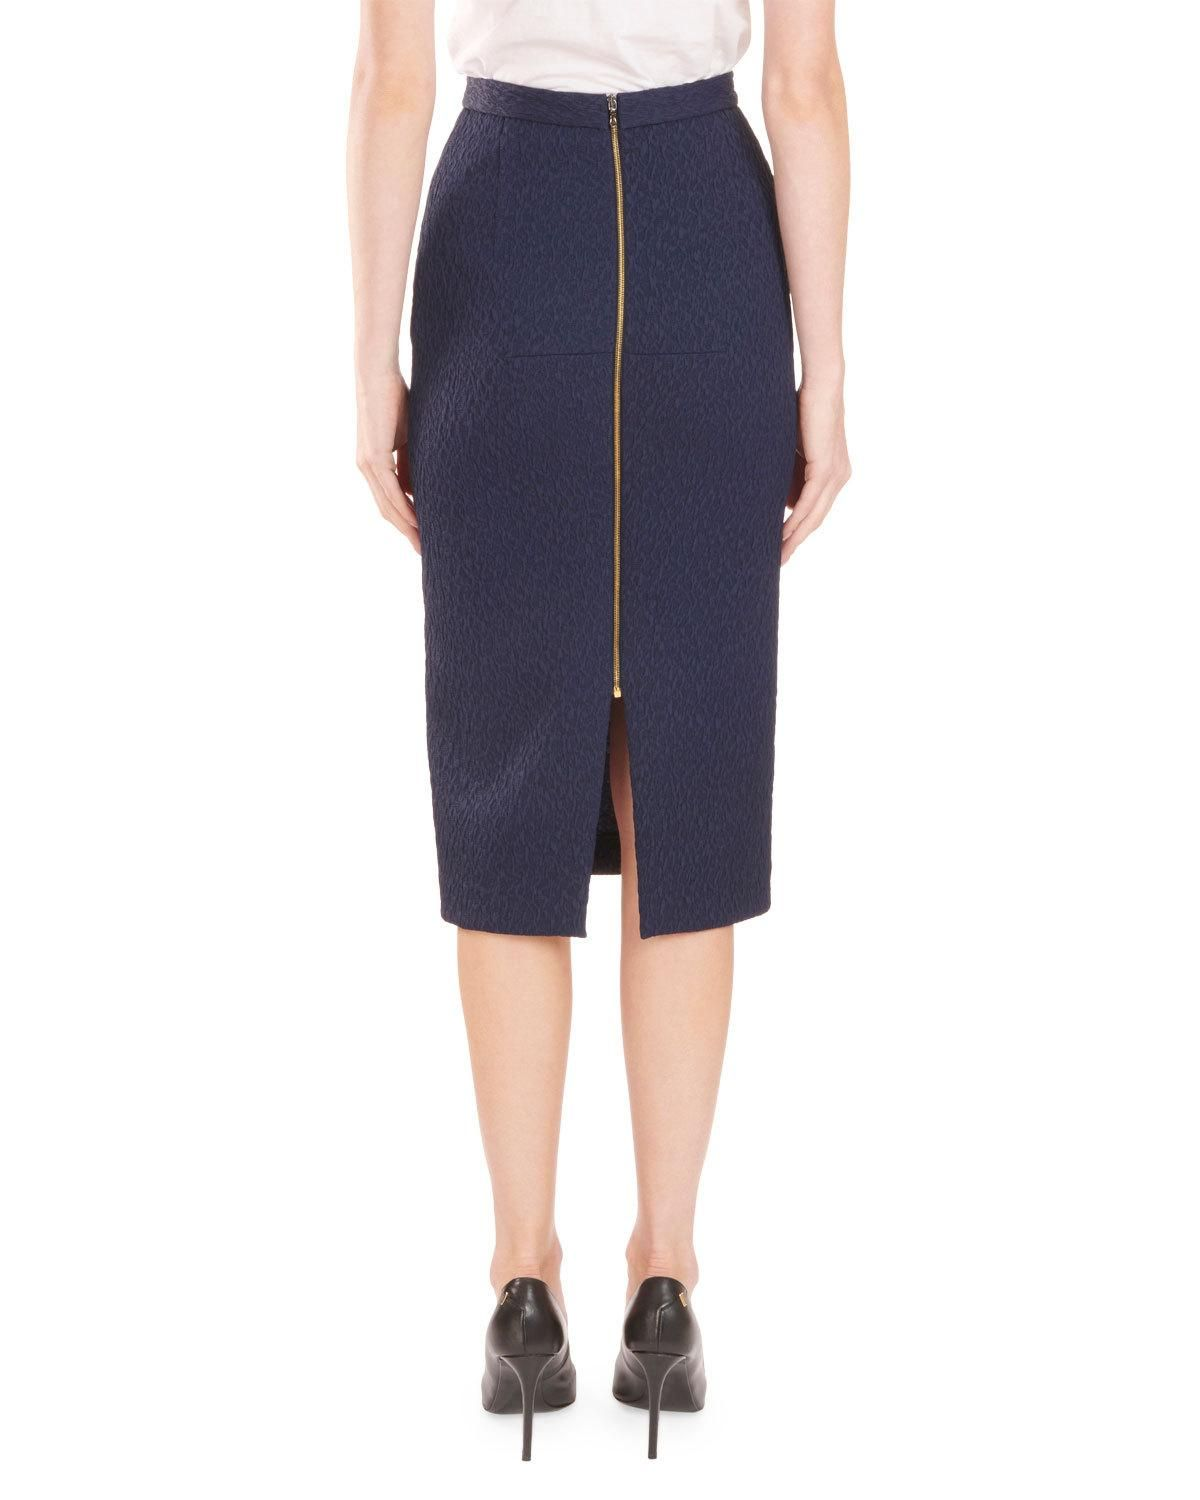 Roland Mouret Arreton Puckered Stretch Pencil Skirt with